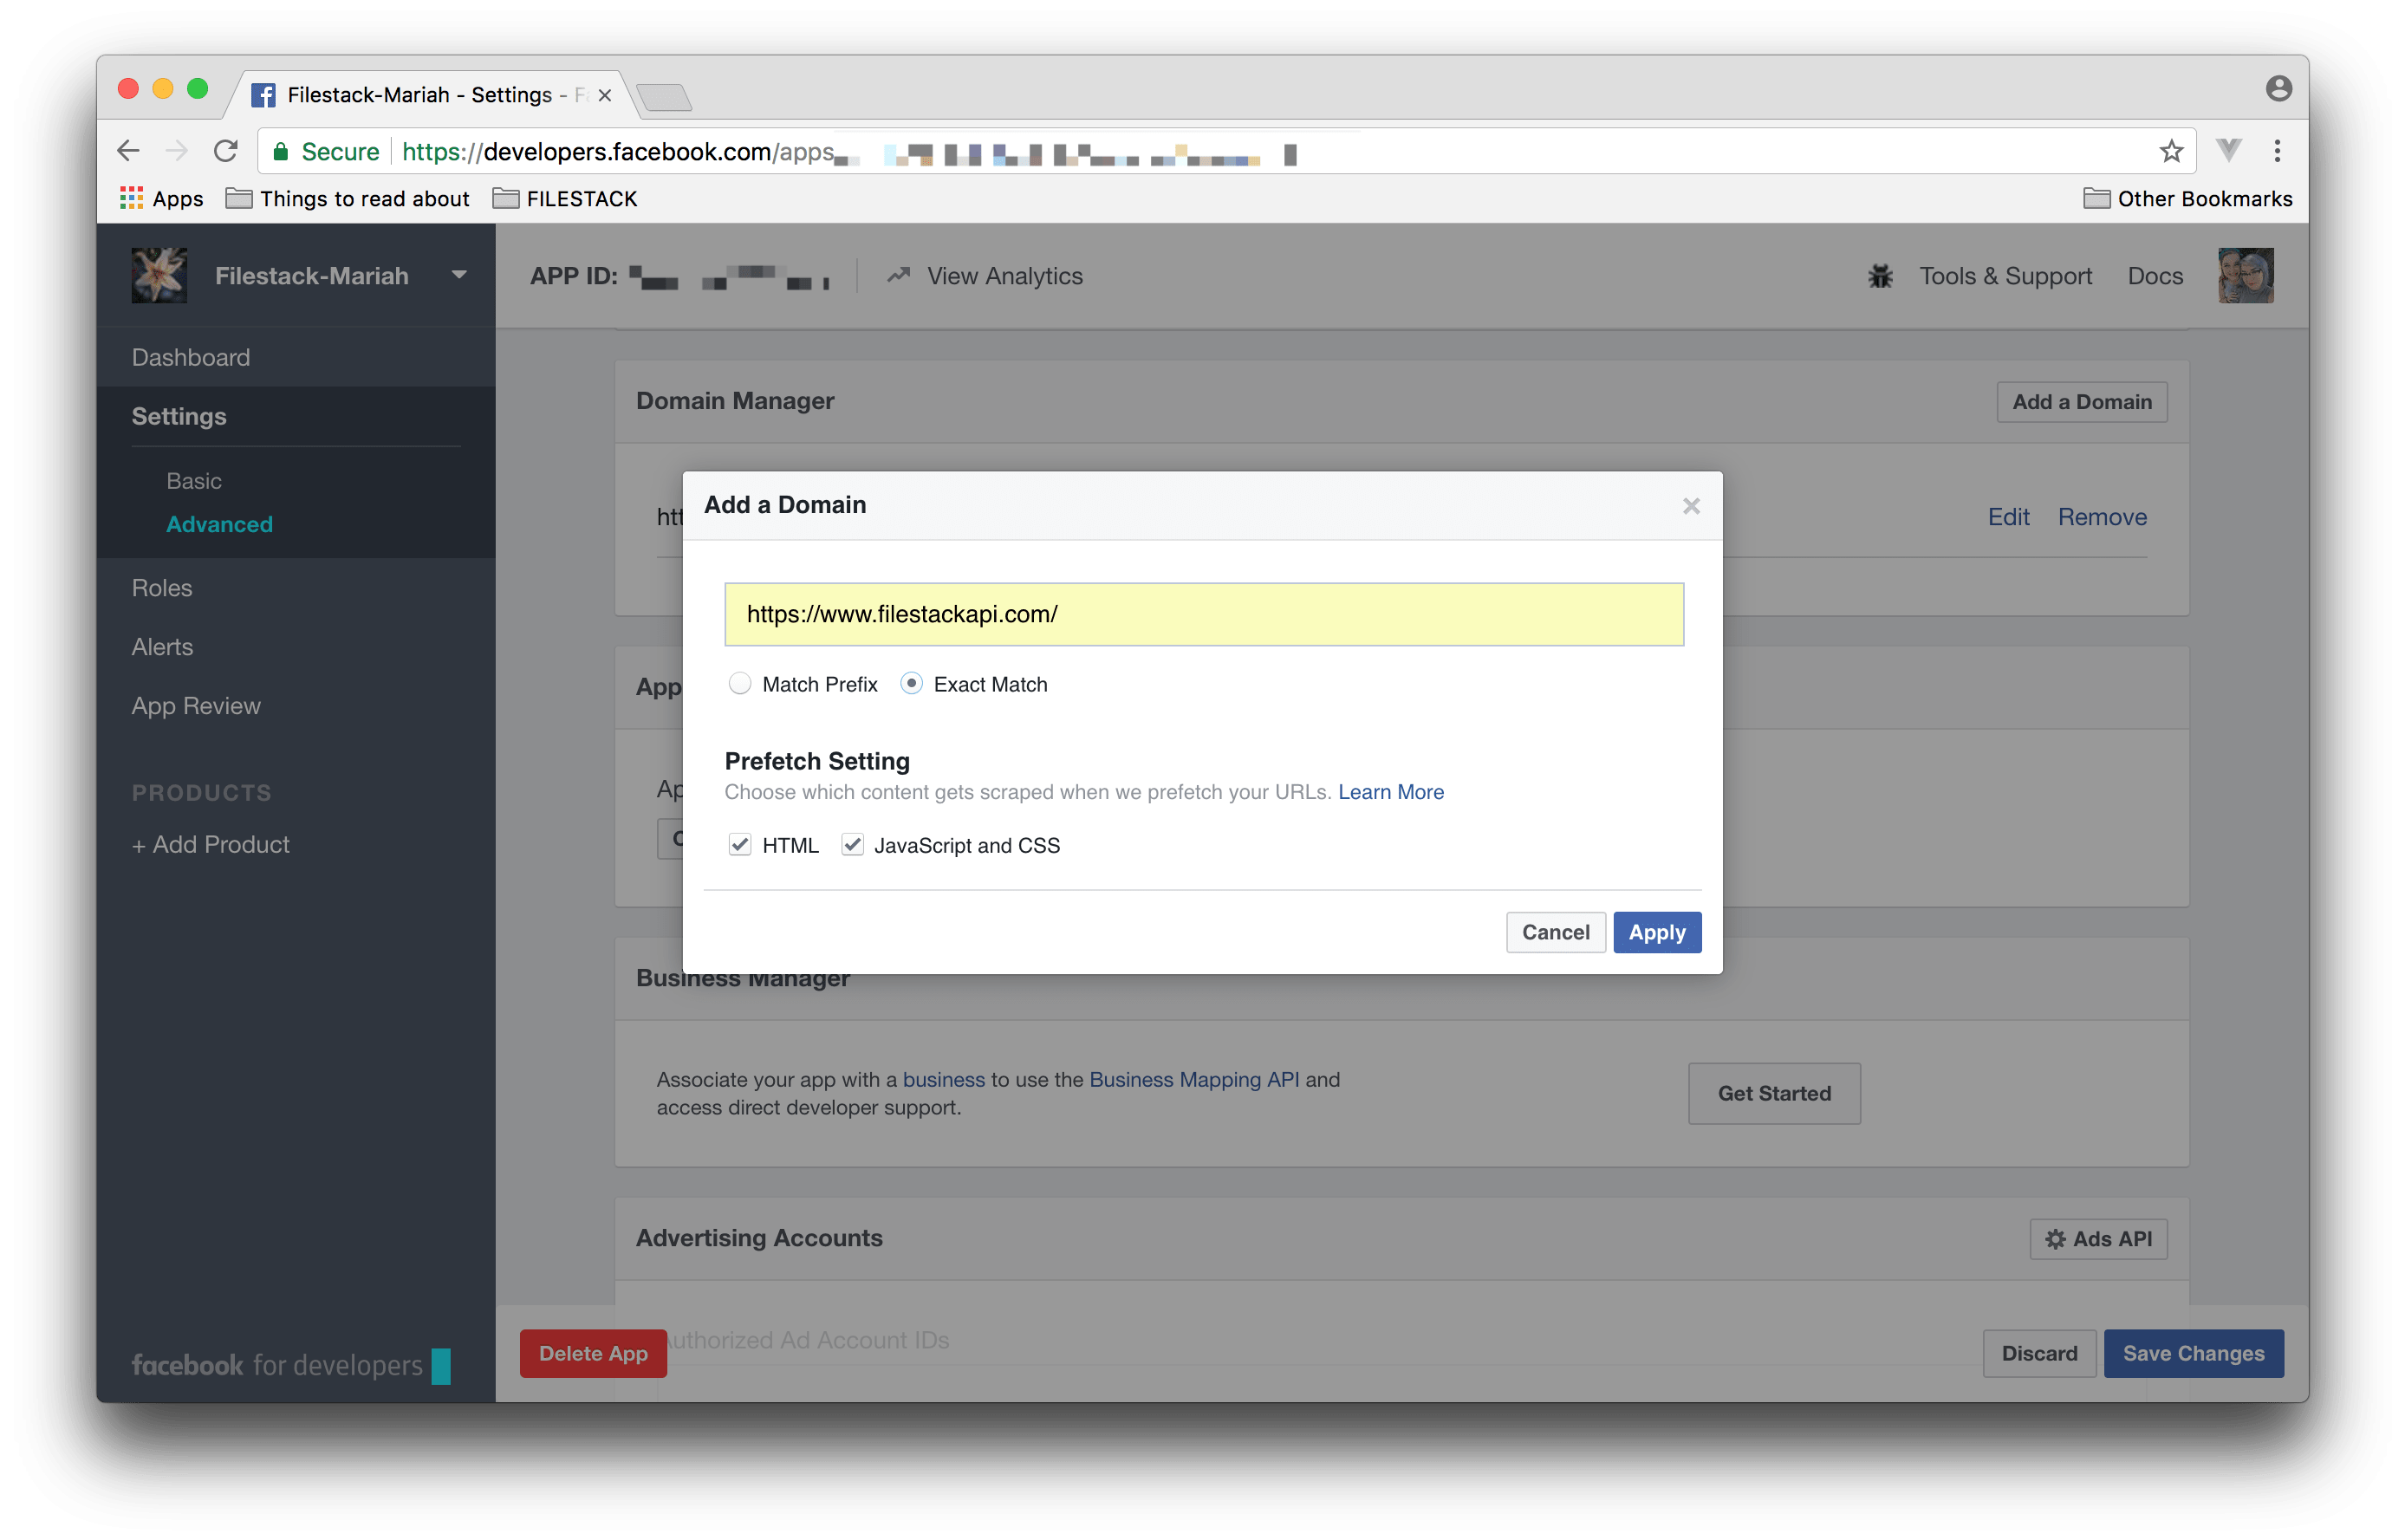 Screenshot showing Add a Domain step in Facebook for Developers